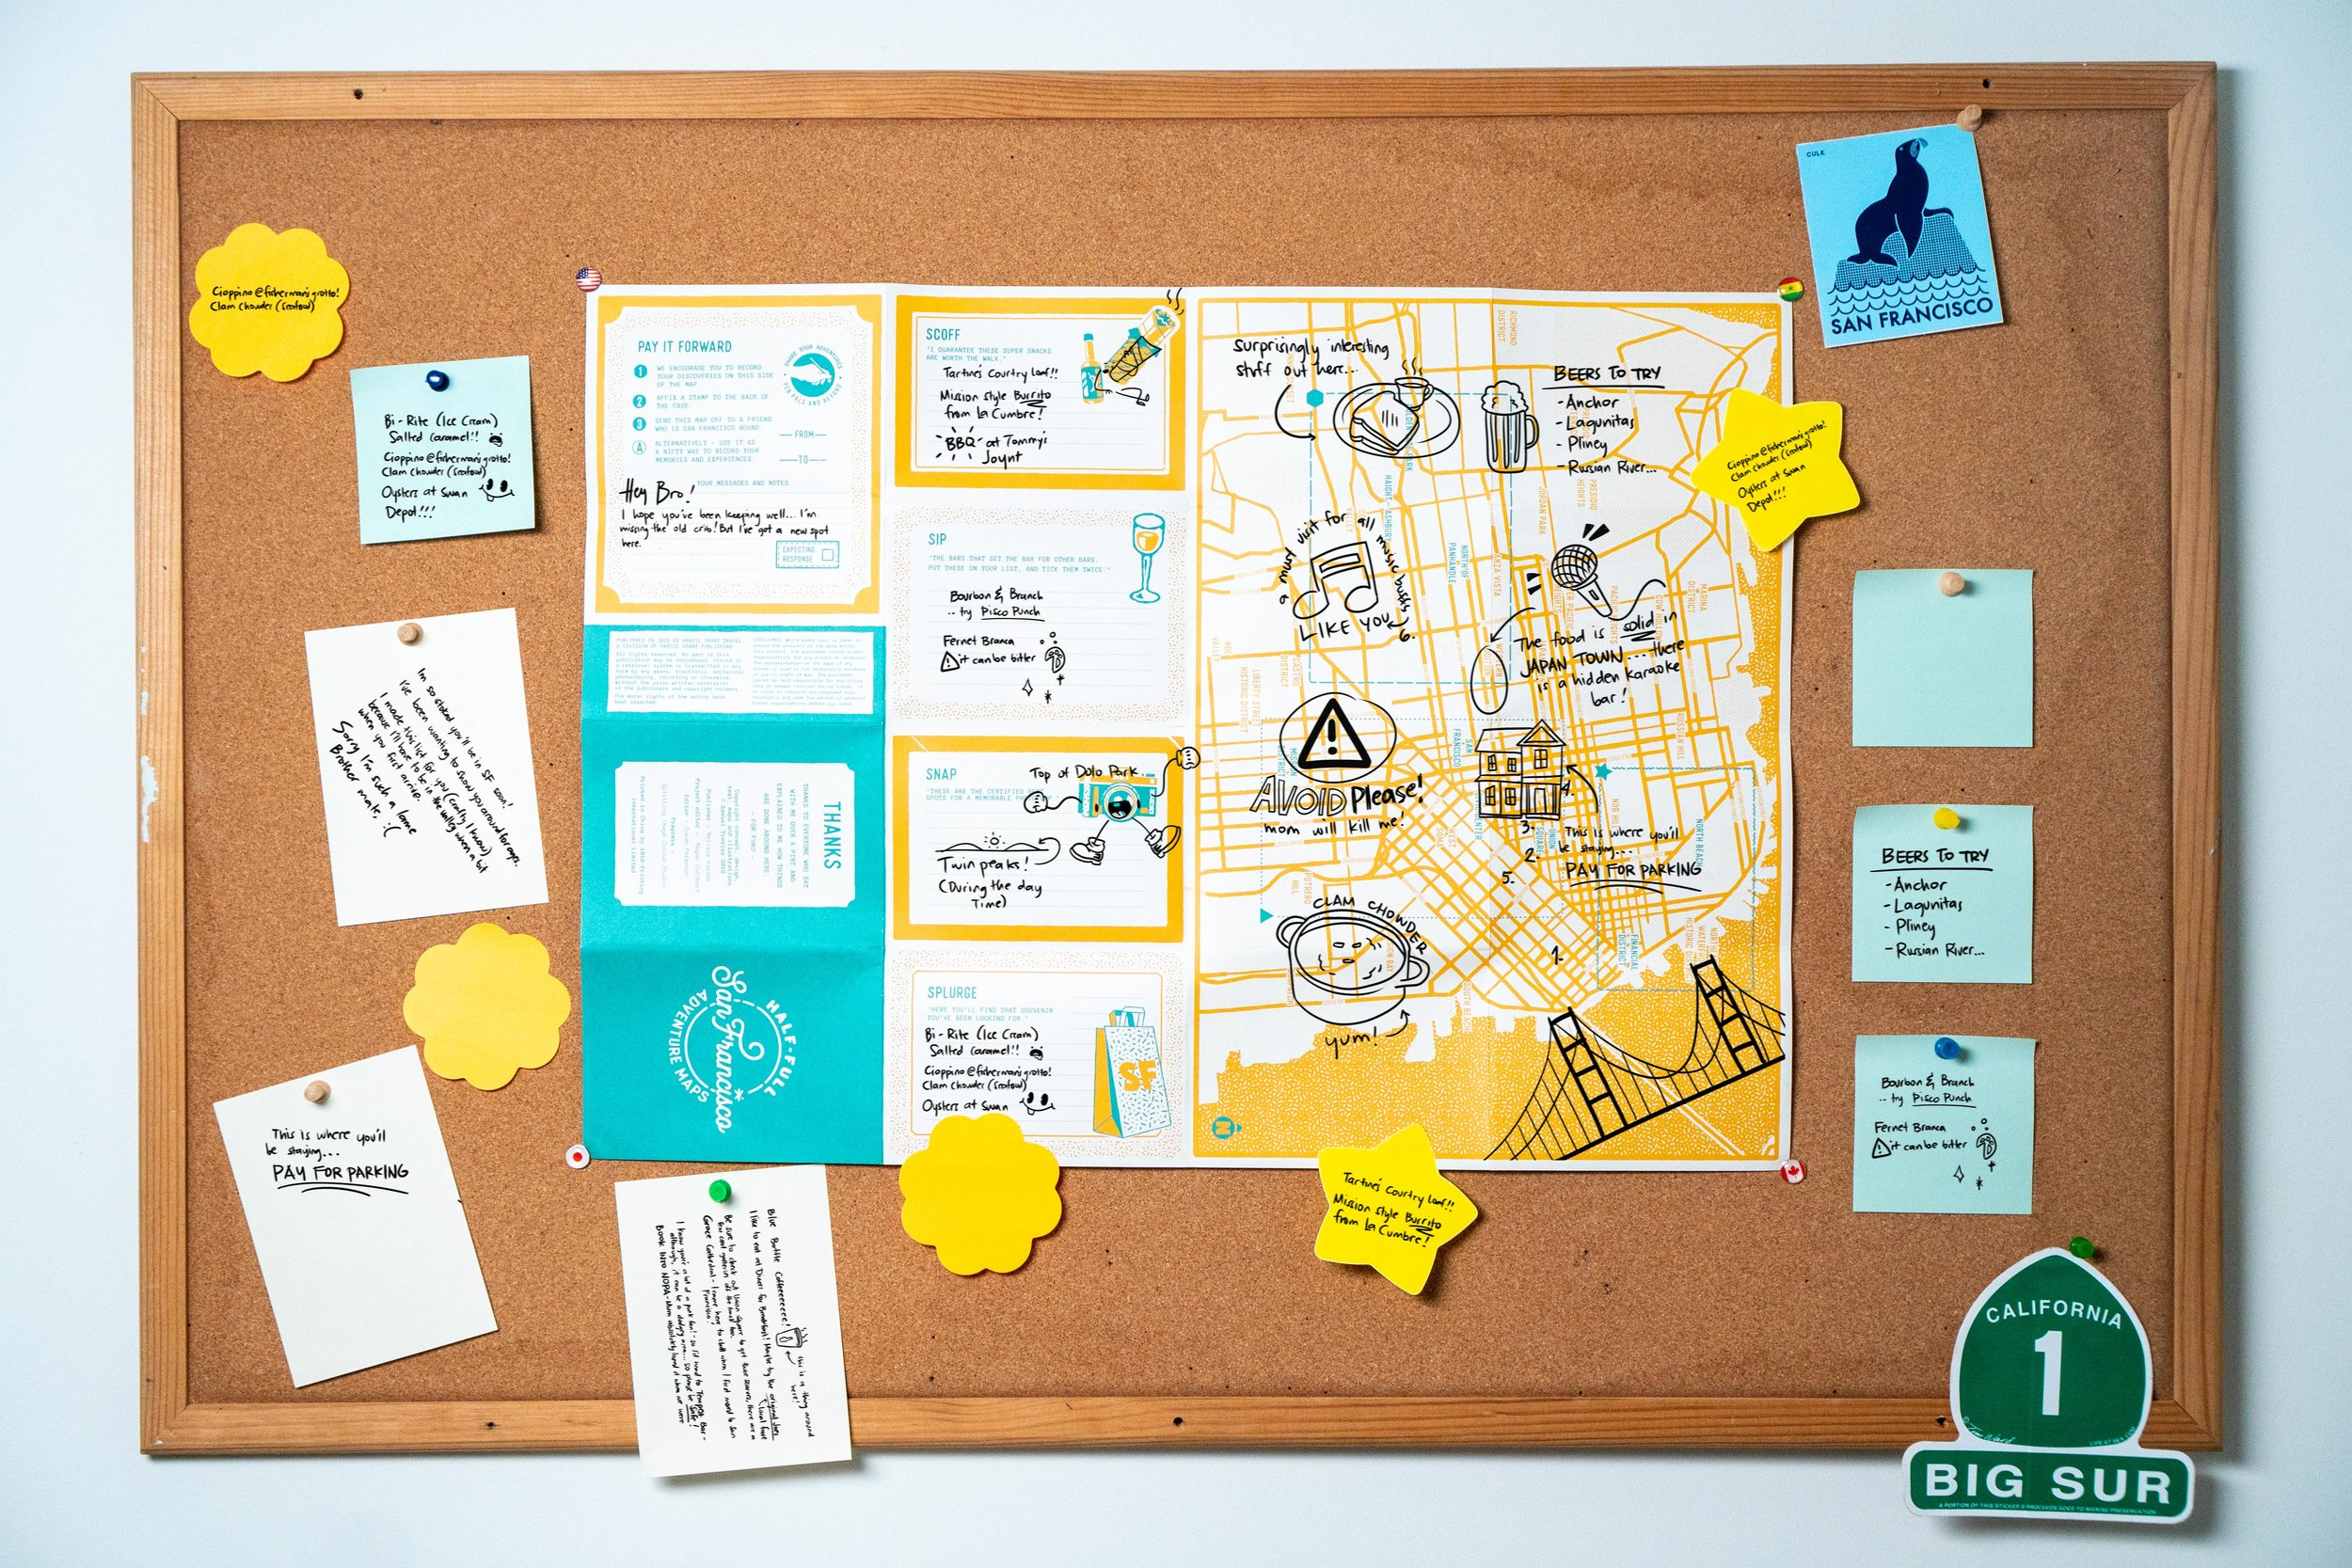 The rear side of the map is designed for you to both store your plans, and ideas that come accross before you leave and also to store your discoveries along the way. We actually